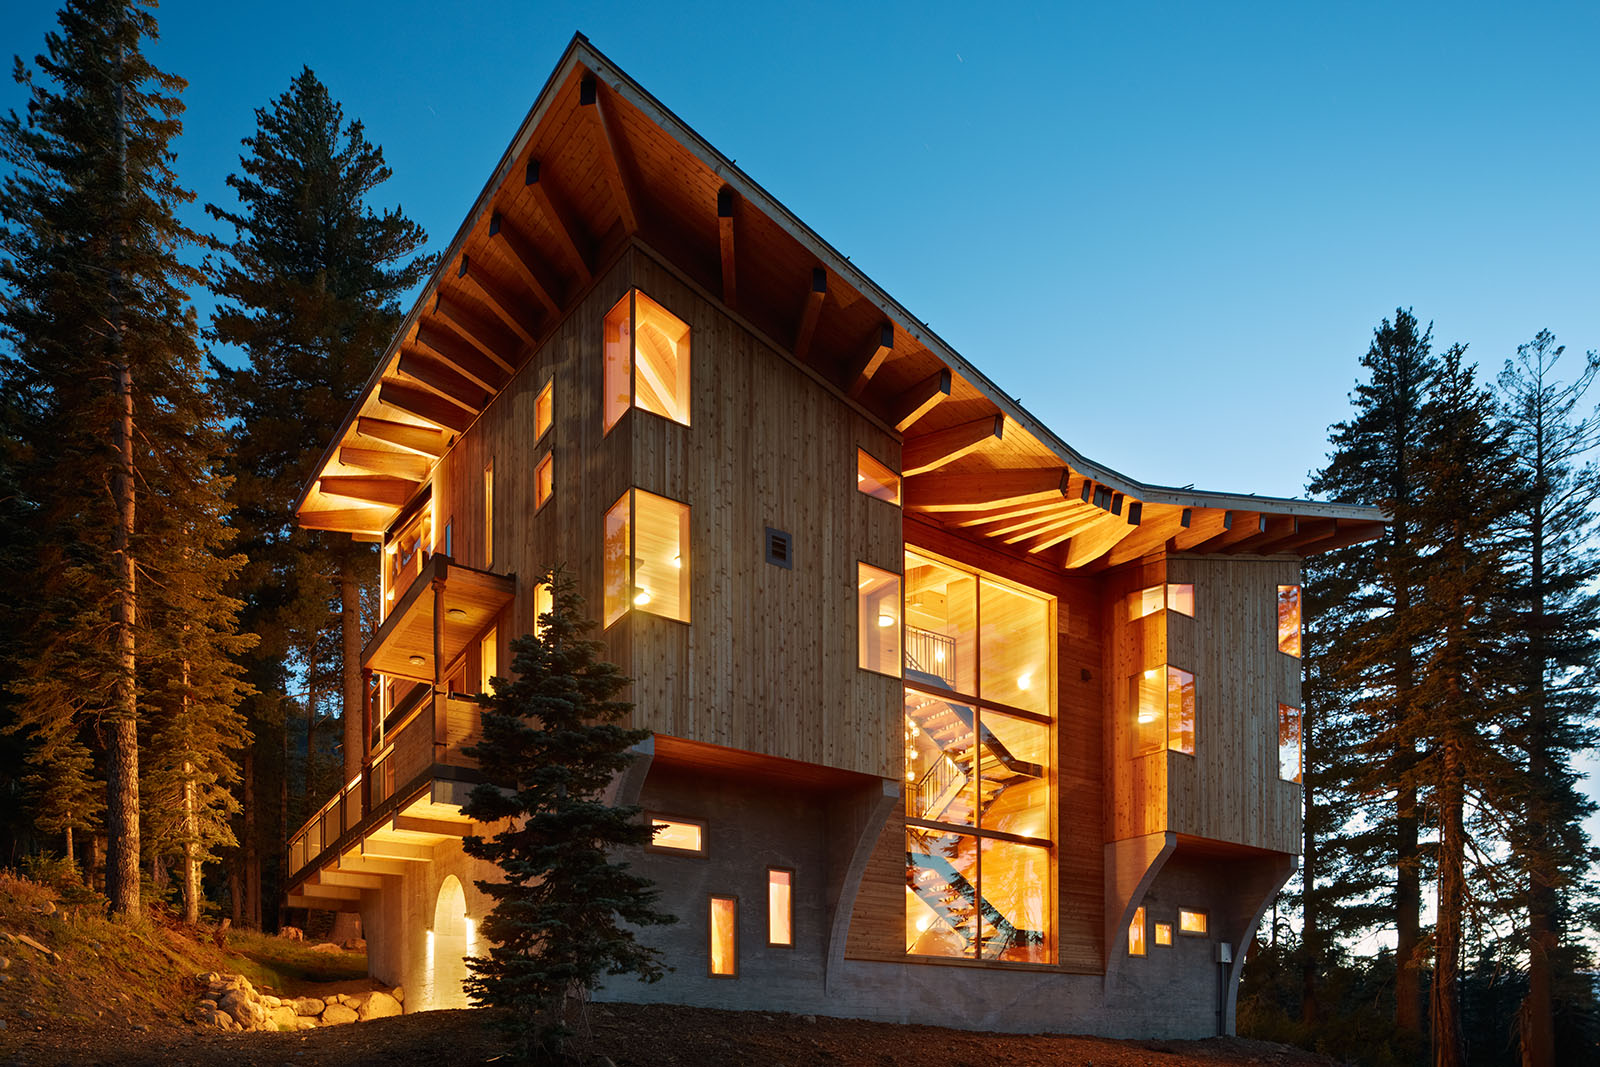 2013 CATT Residential Project of the Year, Crow's Nest Residence